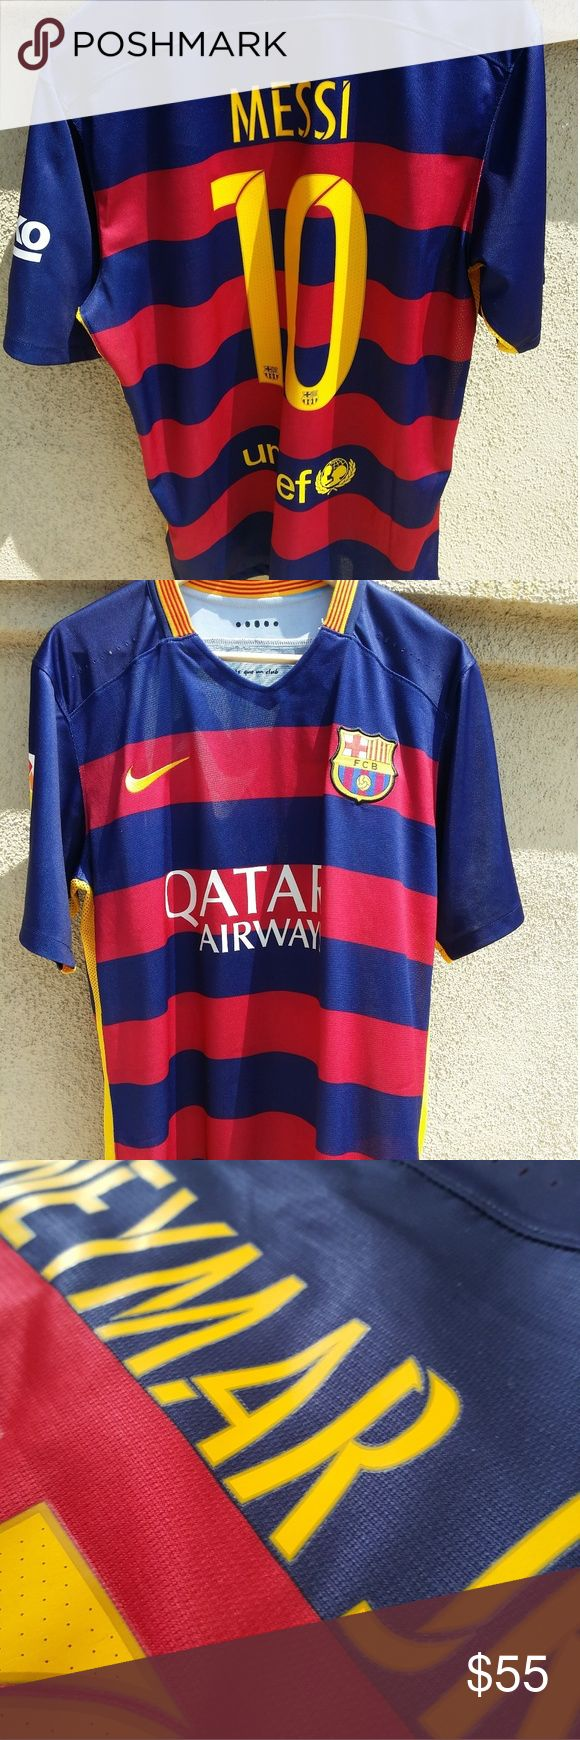 BARCELONA Jersey with Name set MESSI or NO NAMESET Please select the size you prefer at check out. Nike Shirts Tees - Short Sleeve